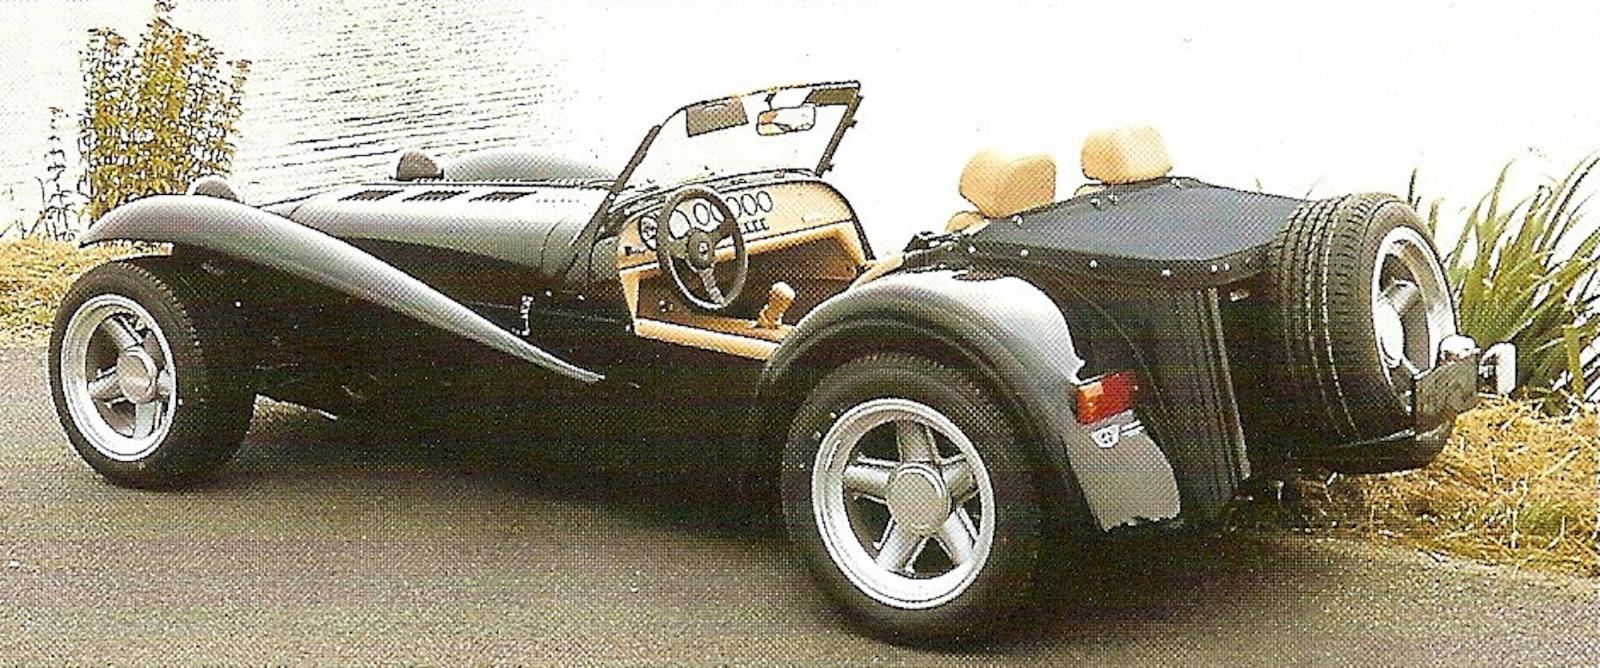 donkervoort-sa8t-3